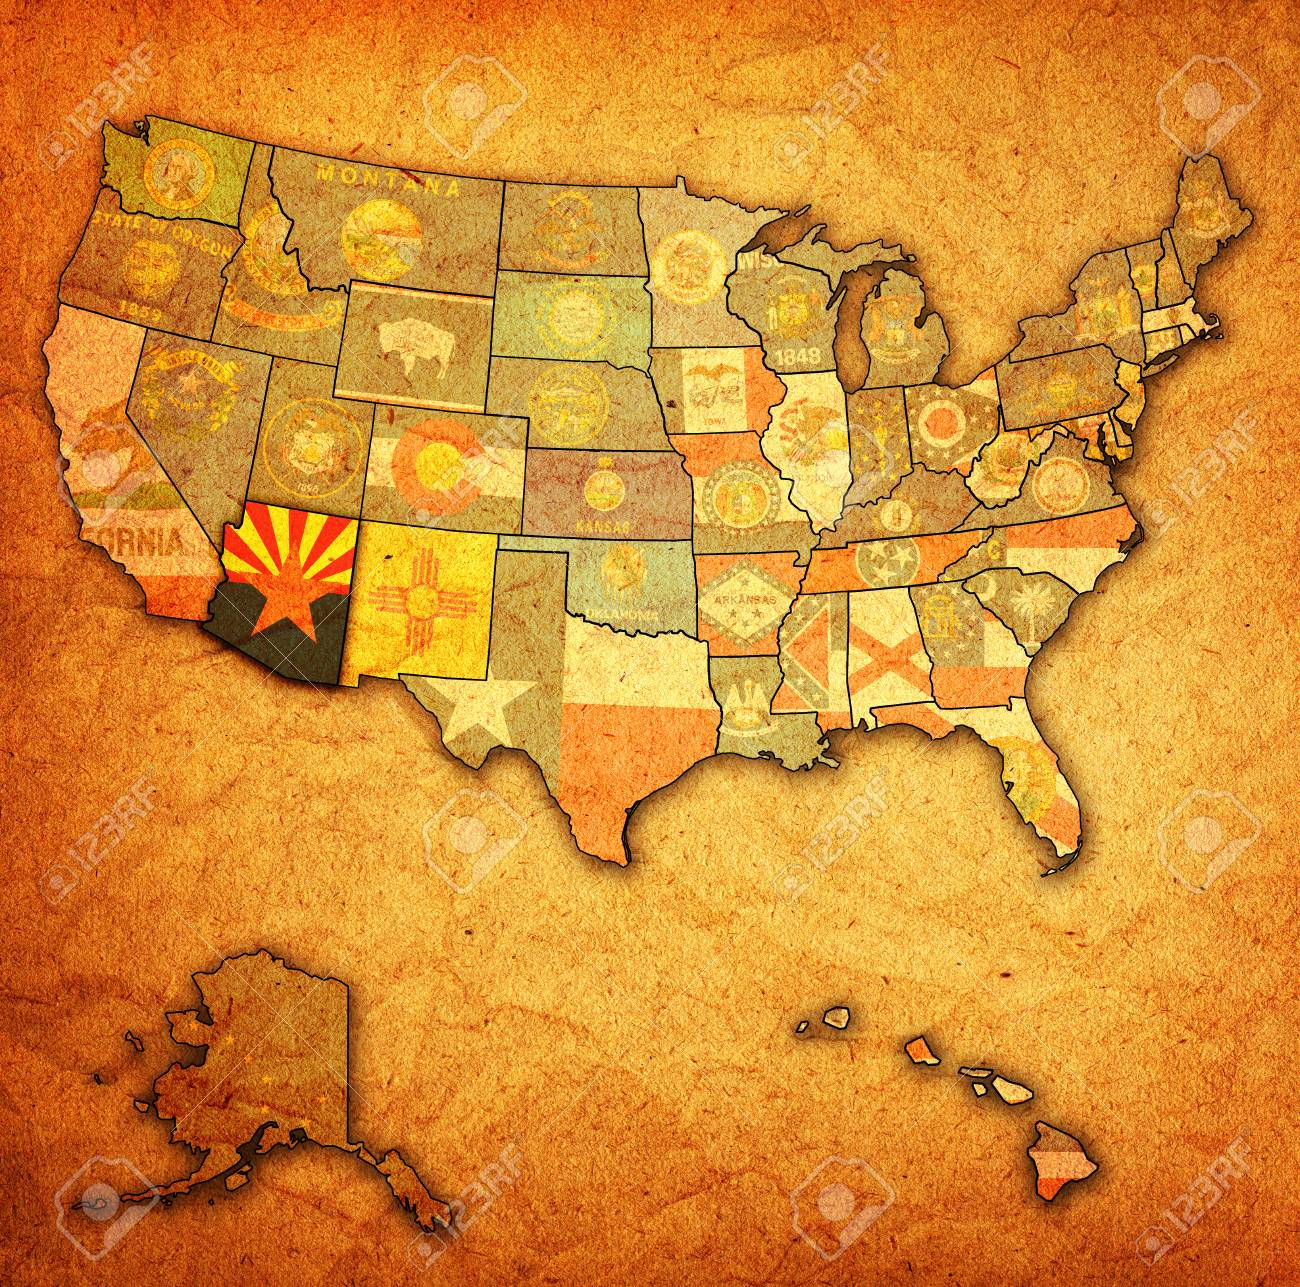 Map Of Old Arizona.Arizona On Old Vintage Map Of Usa With State Borders